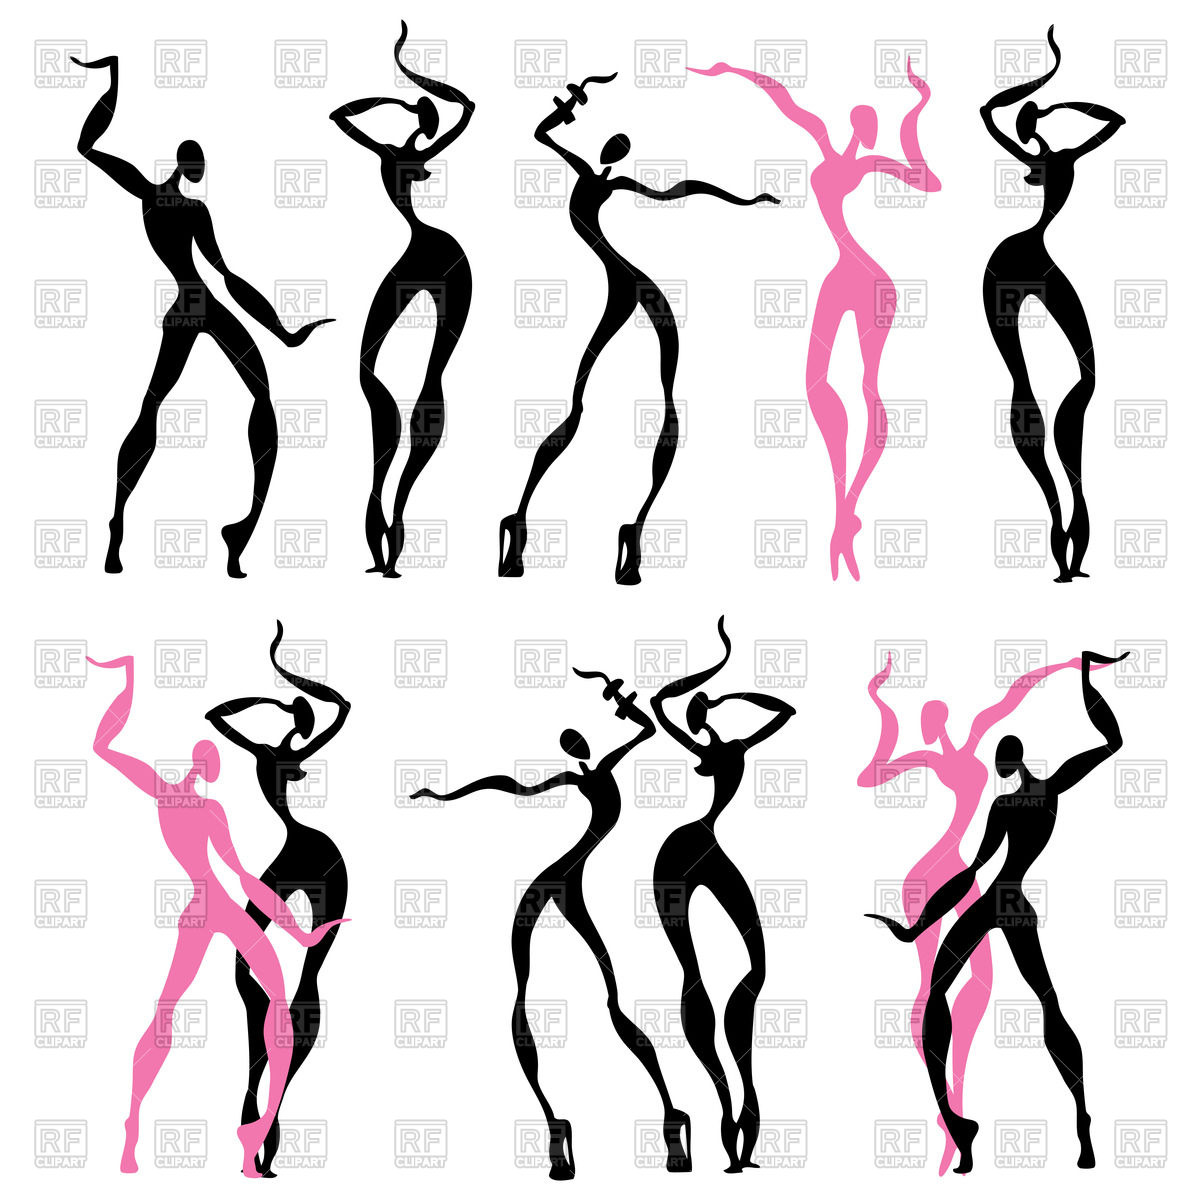 1200x1200 Silhouette Of Women's Abstract Dancing Figures Royalty Free Vector